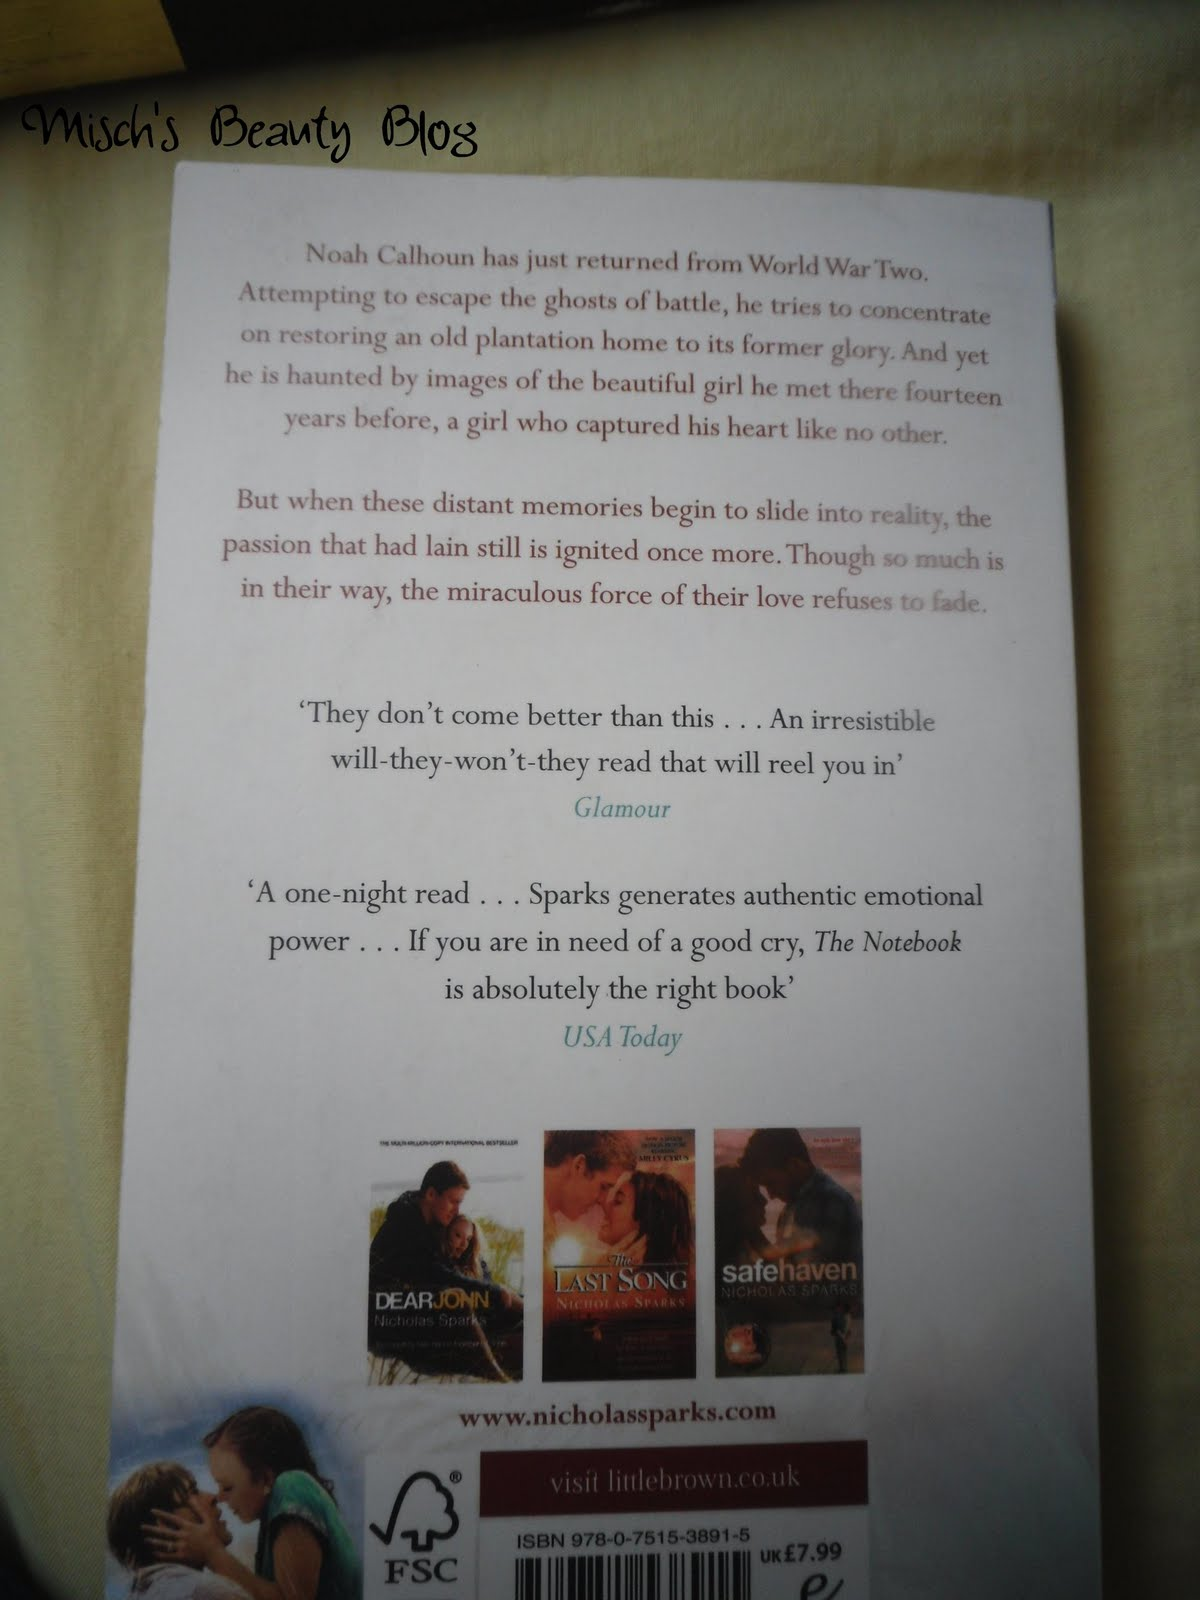 misch s beauty blog book review the notebook by nicholas sparks now i really don t want to spoil anything for you so this will be hard for me but just in case if you want to this book some time soon